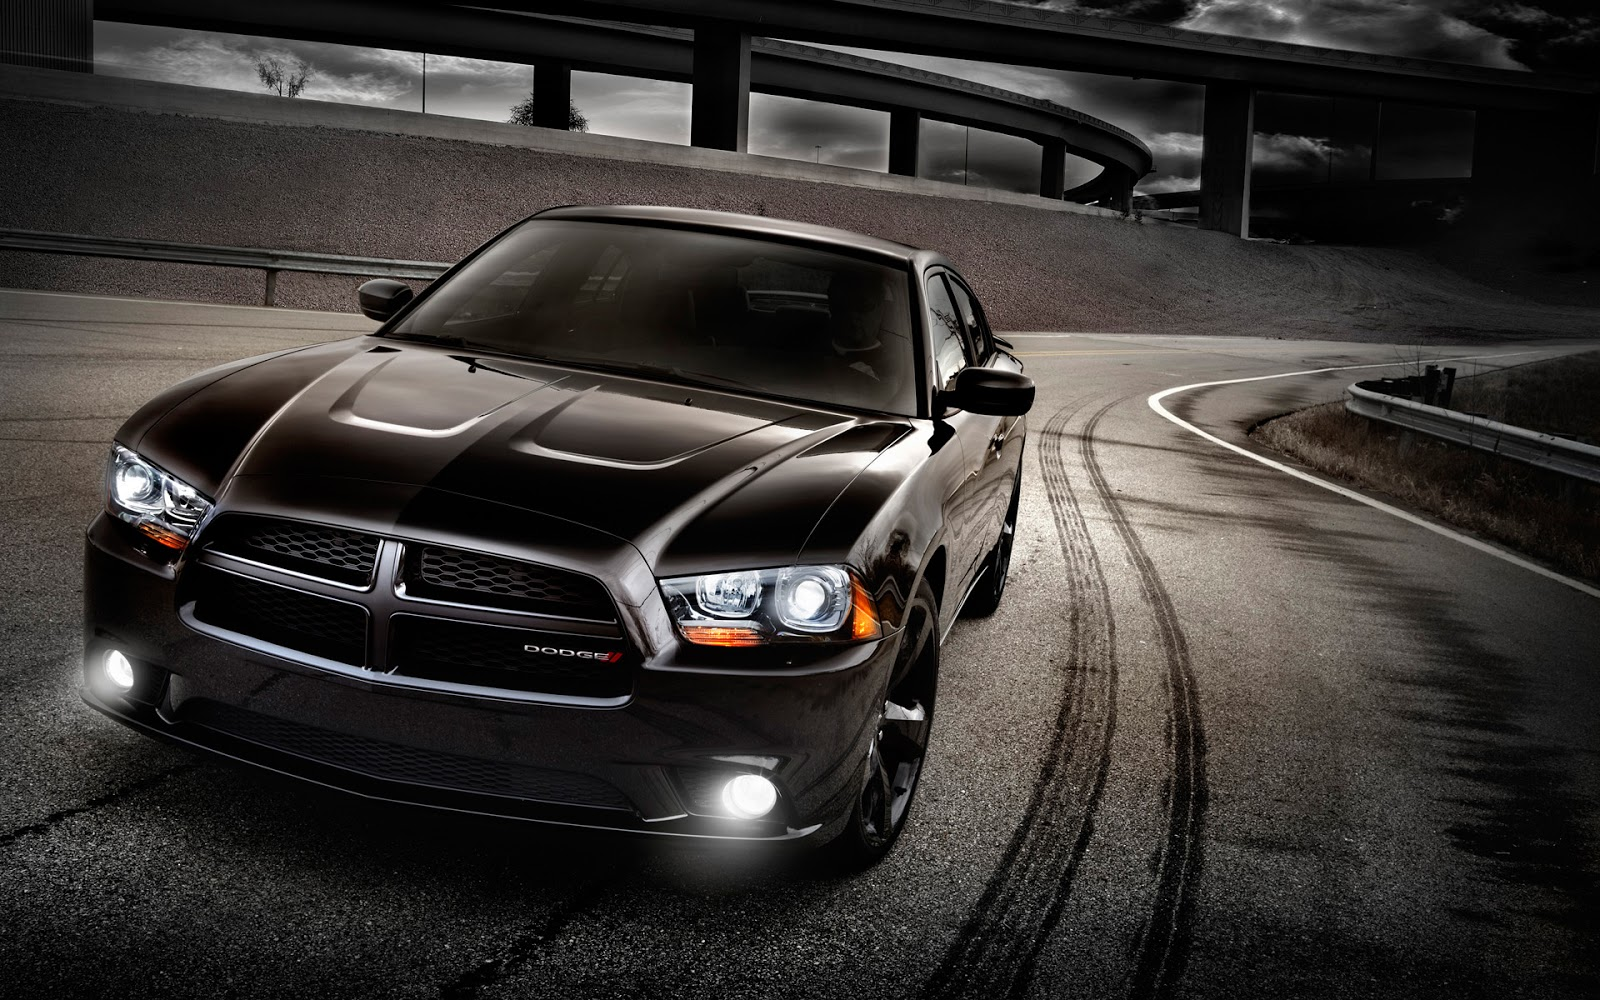 http://4.bp.blogspot.com/-GFrVvqEjNqM/UV3XvBdwwmI/AAAAAAAANYA/3nPT-Id4uoA/s1600/2012+Dodge+Charger+RT+Wallpapers4.jpg